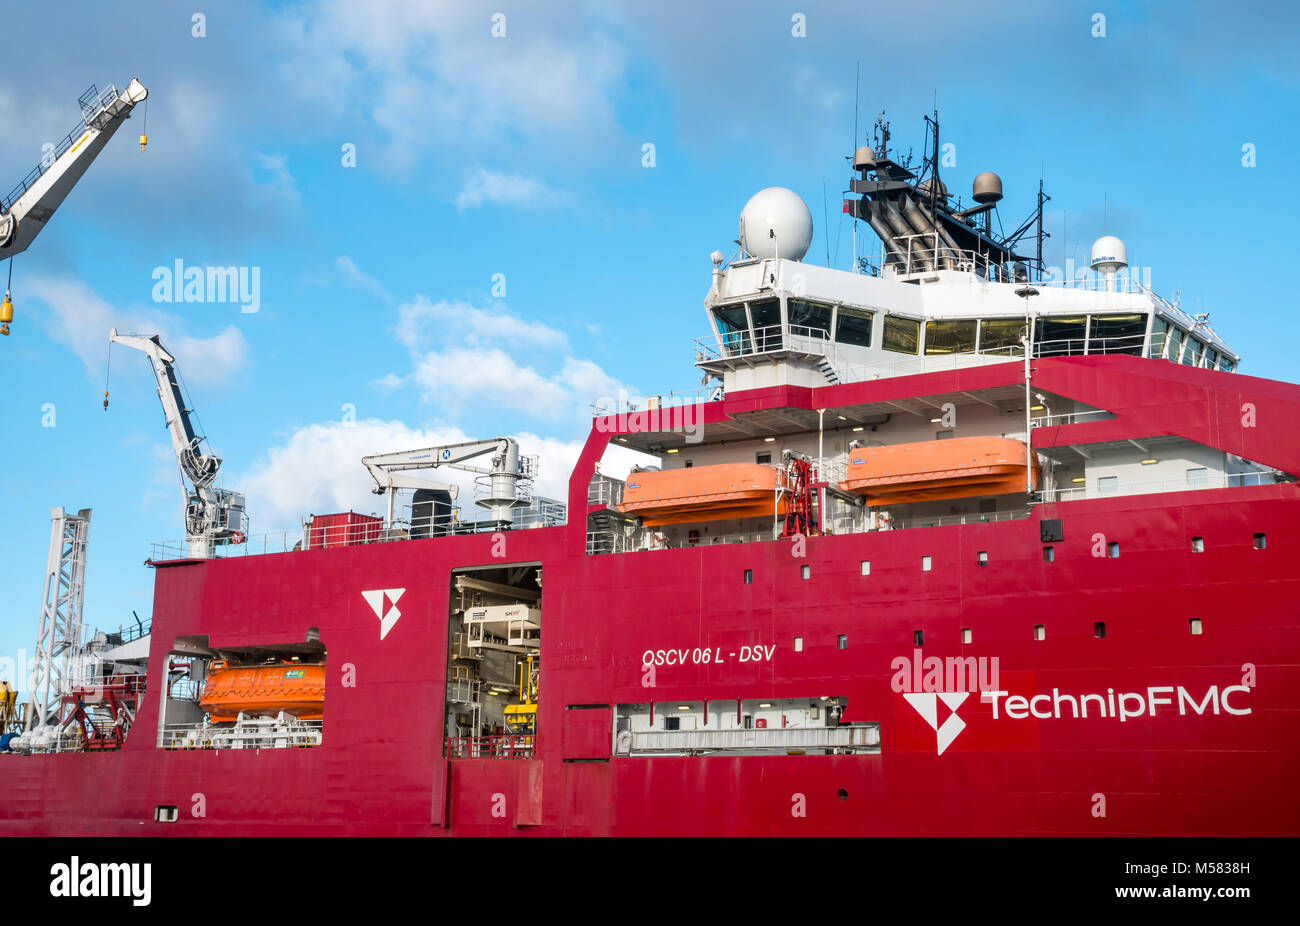 Diving Support Vessel Stock Photos & Diving Support Vessel